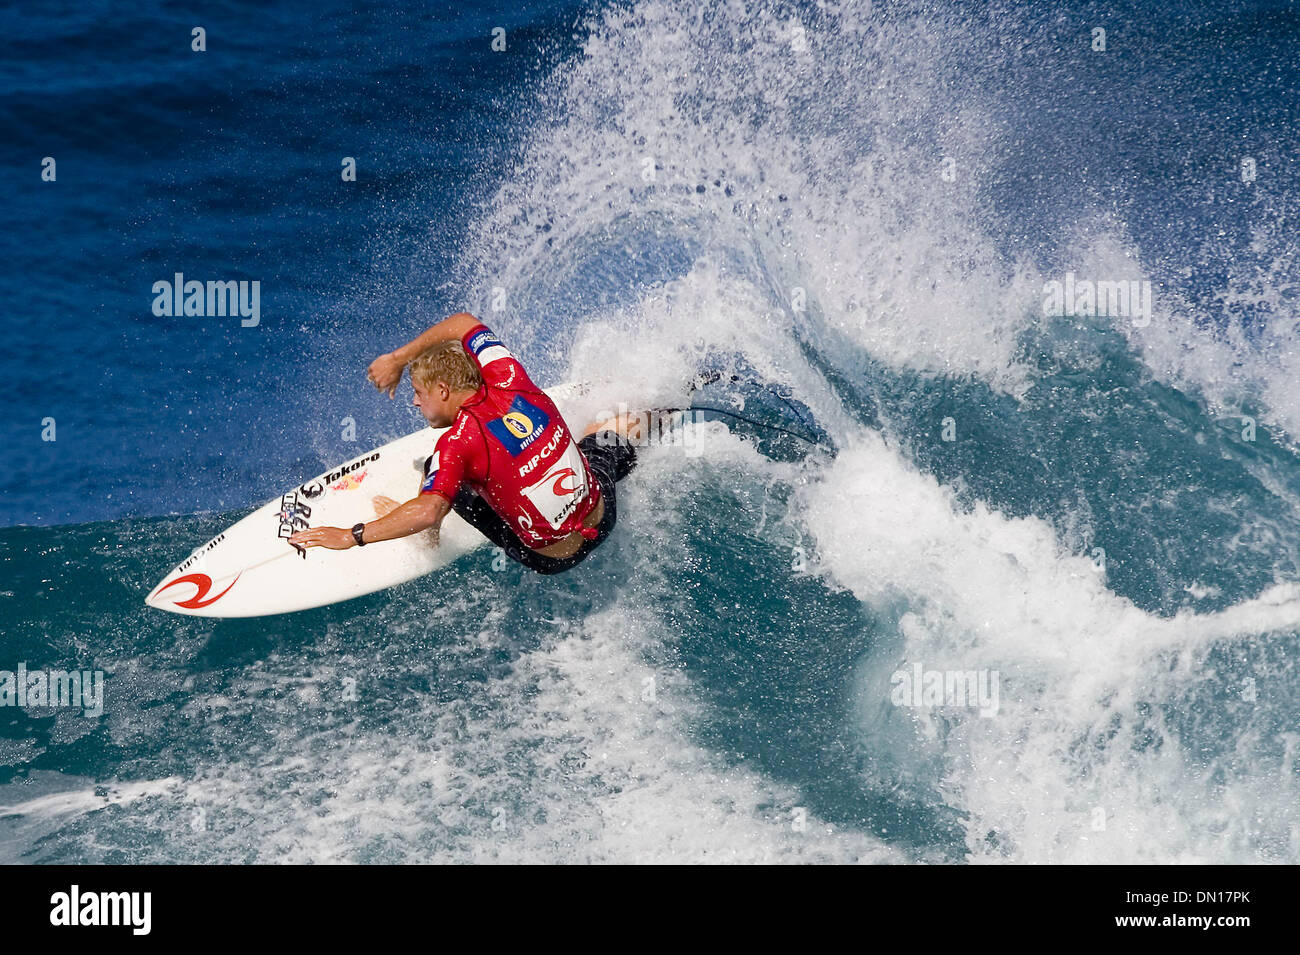 9553def86a Surfing Action Pipeline Hawaii Stock Photos   Surfing Action ...